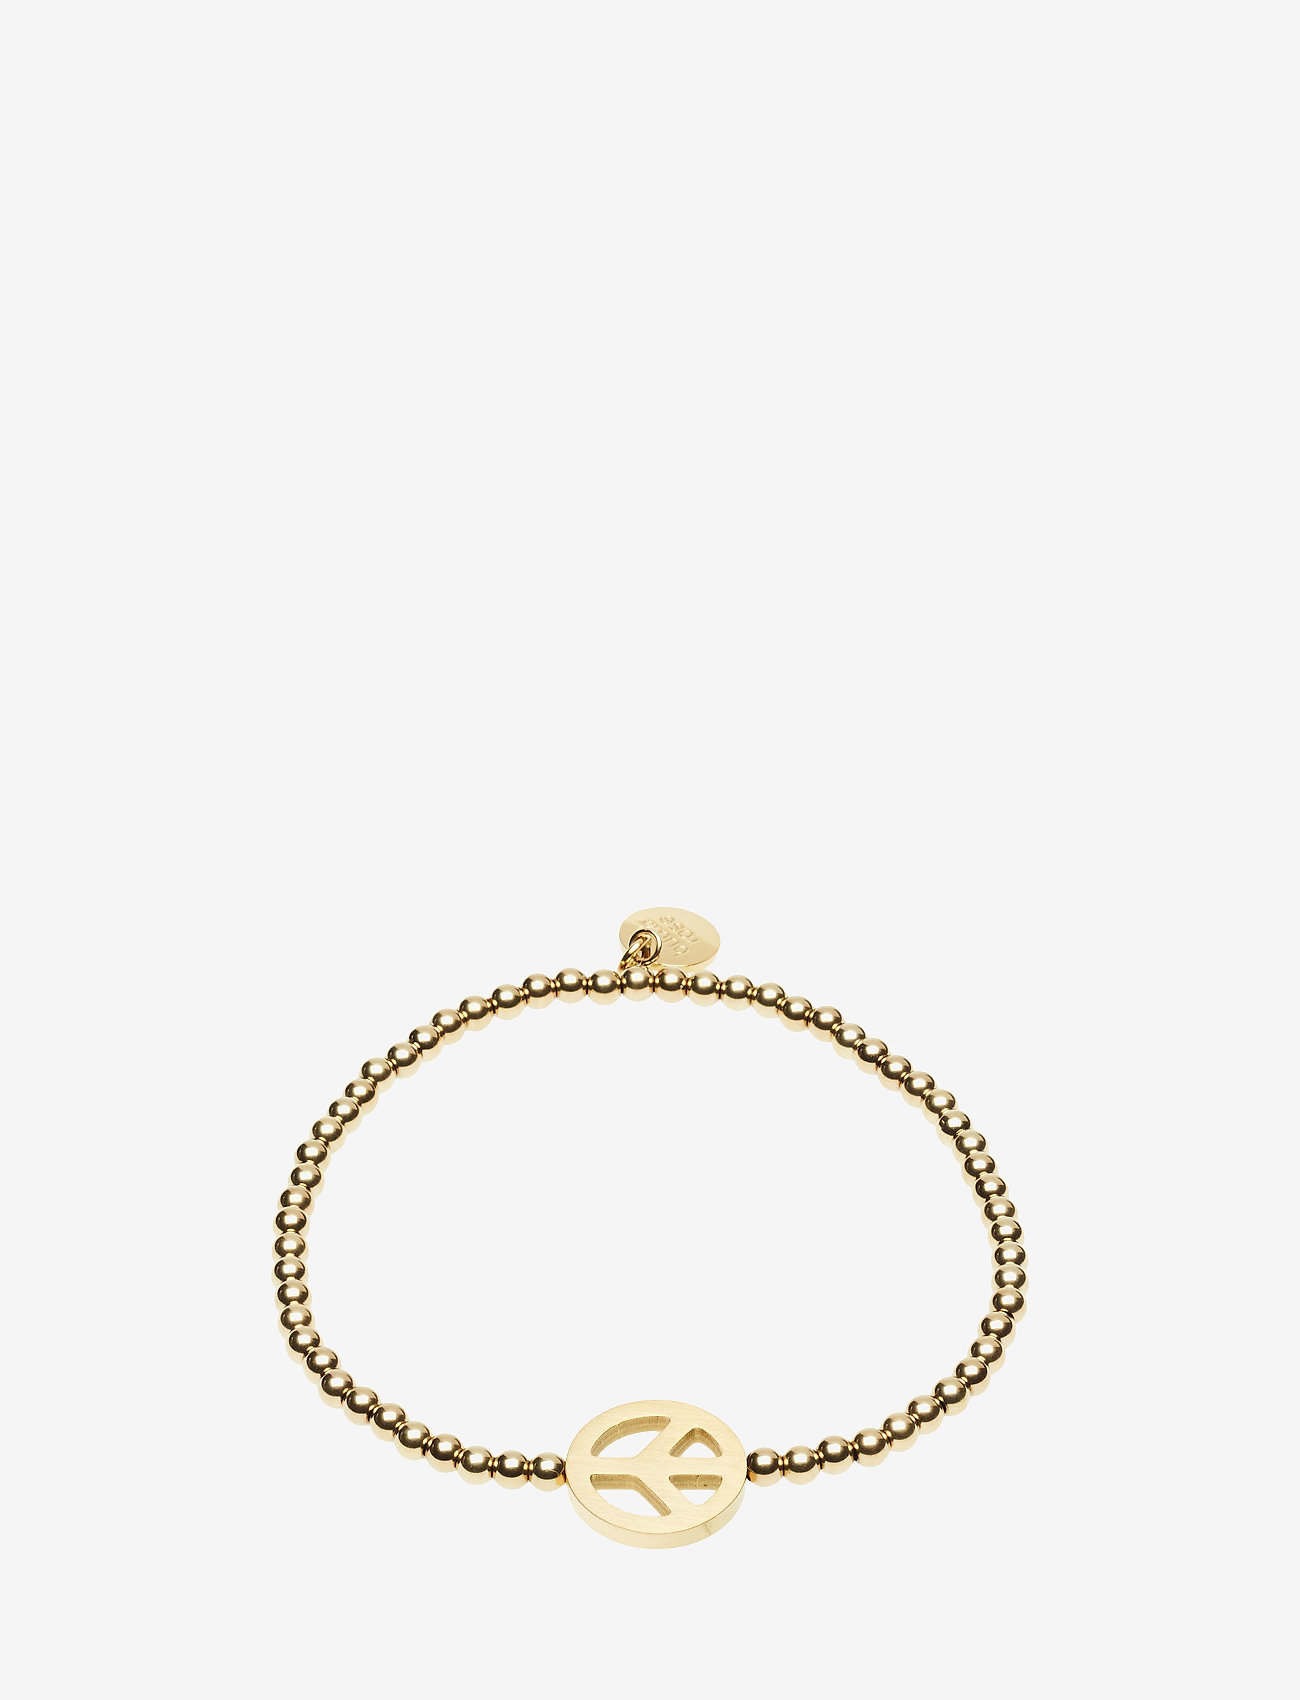 Bud to rose - Peace - armbanden - gold - 0